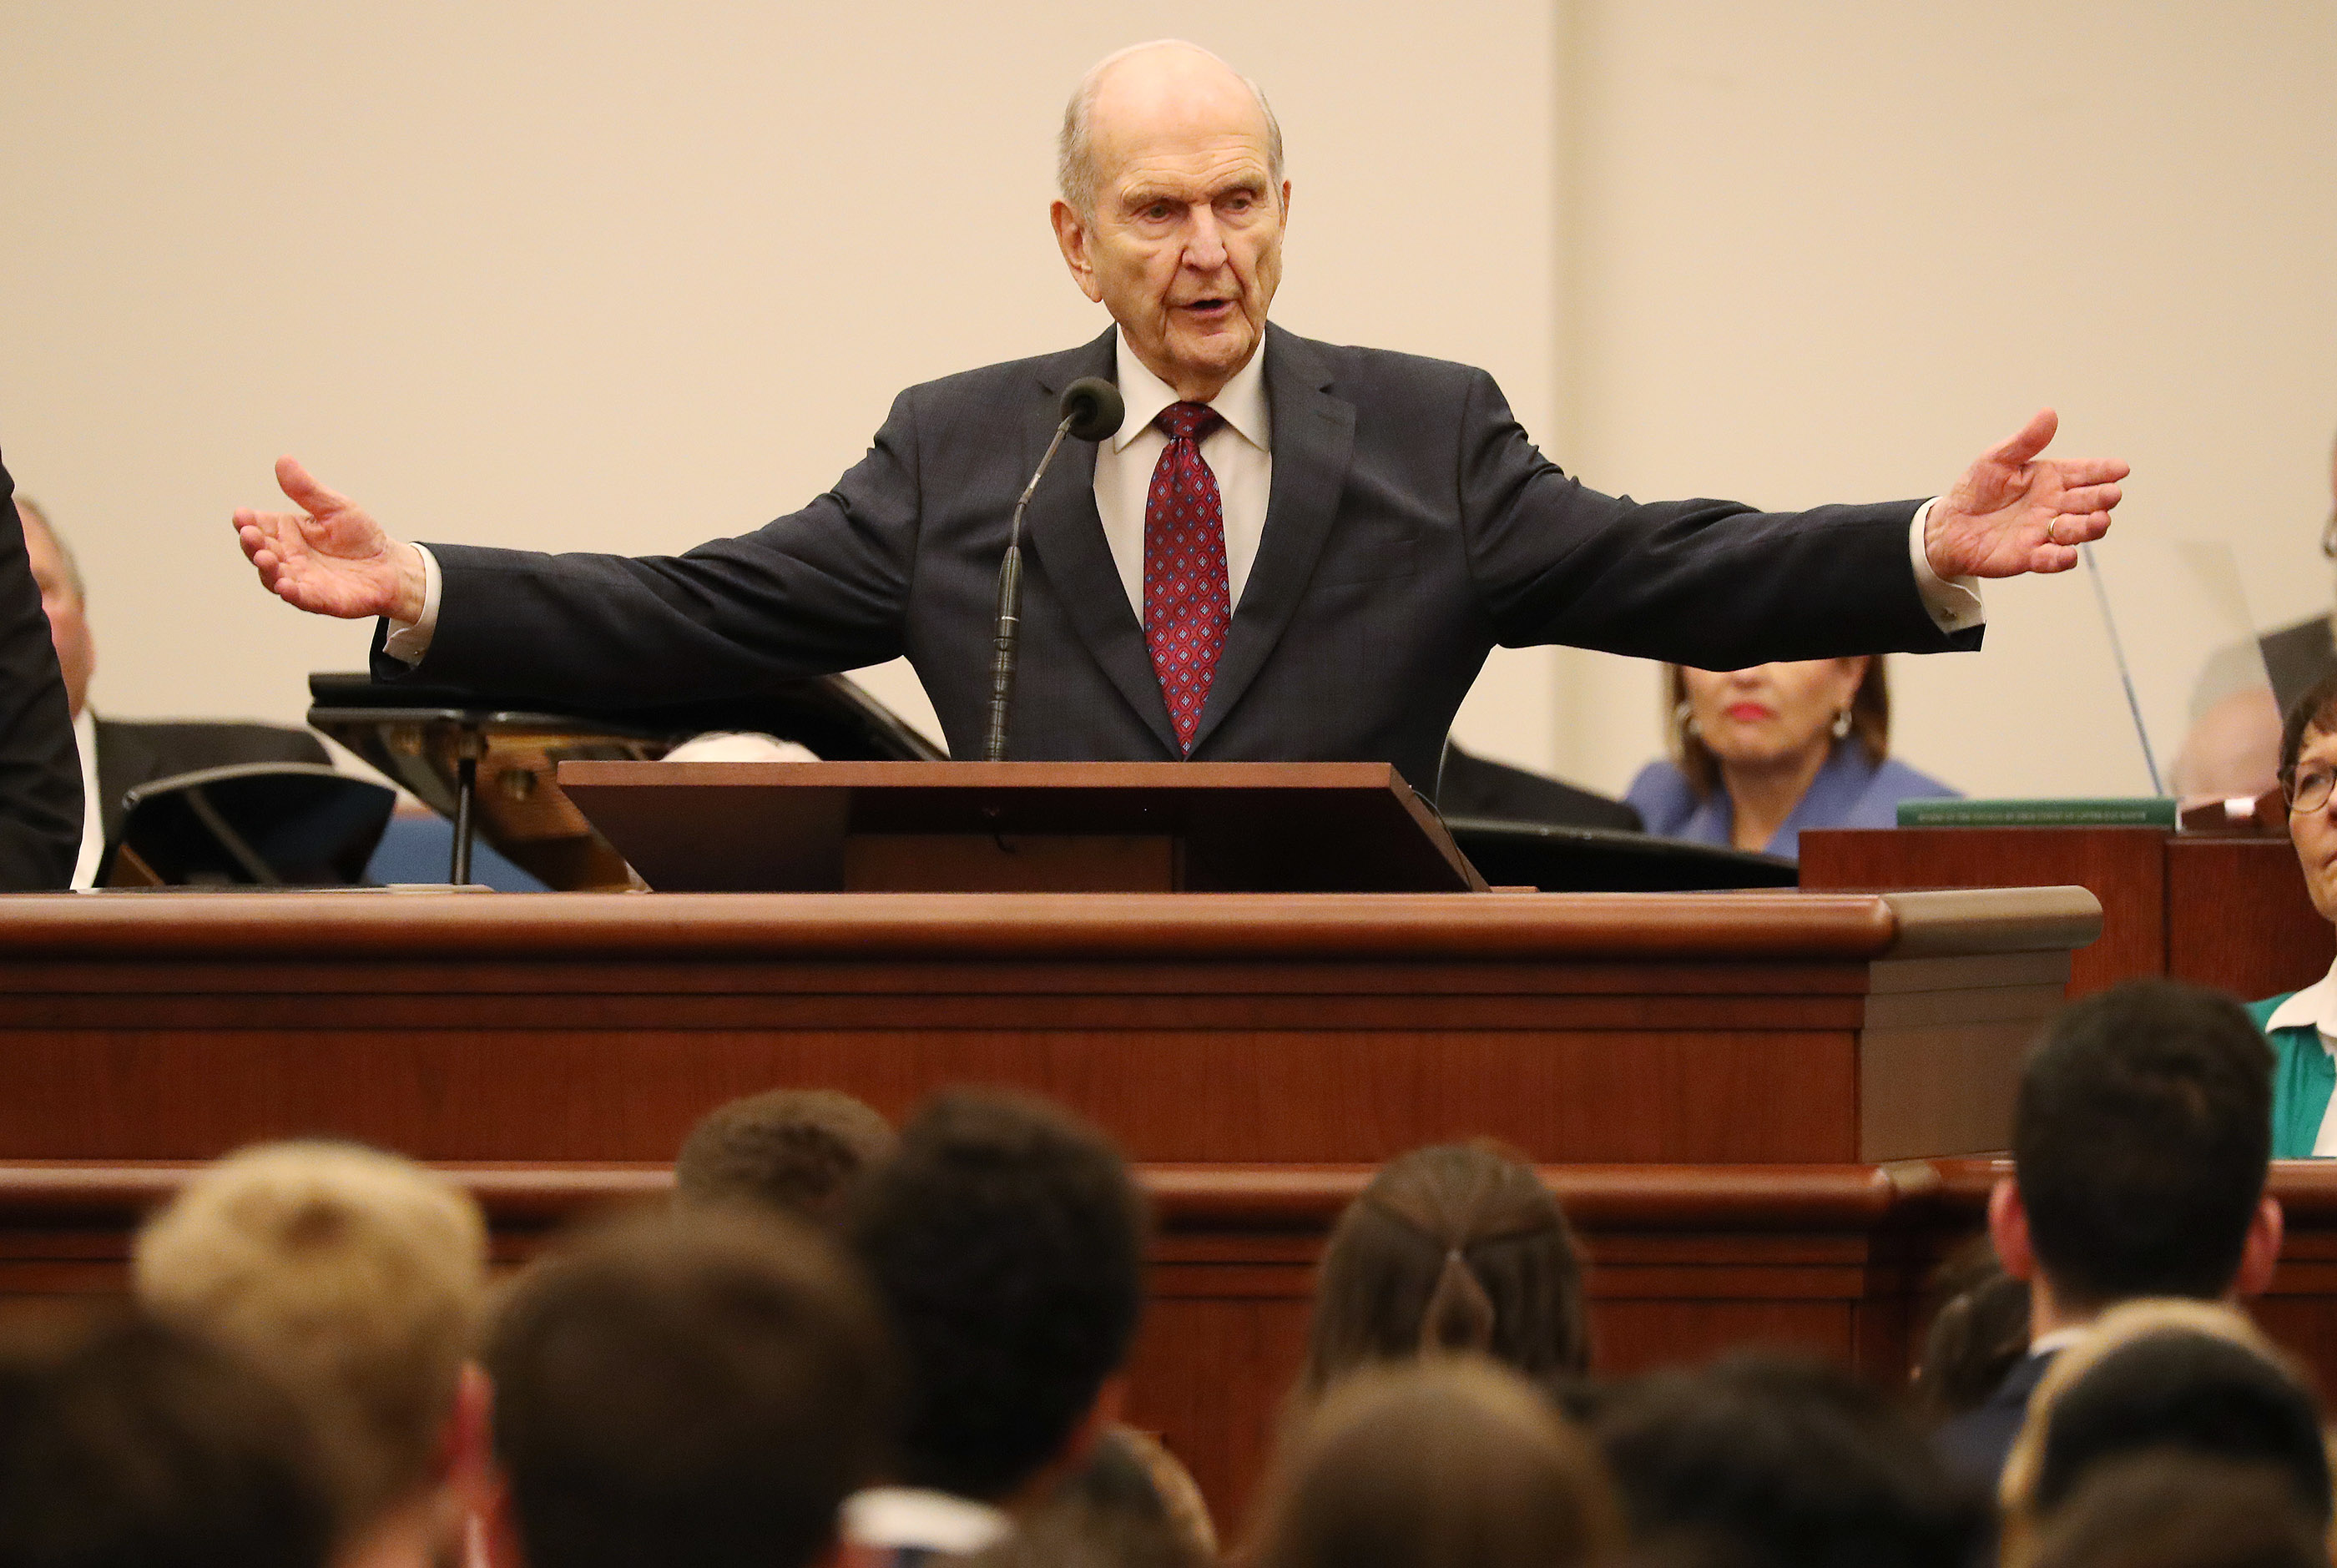 President Russell M. Nelson of The Church of Jesus Christ of Latter-day Saints speaks in a youth devotional in Rome, Italy, on Saturday, March 9, 2019.